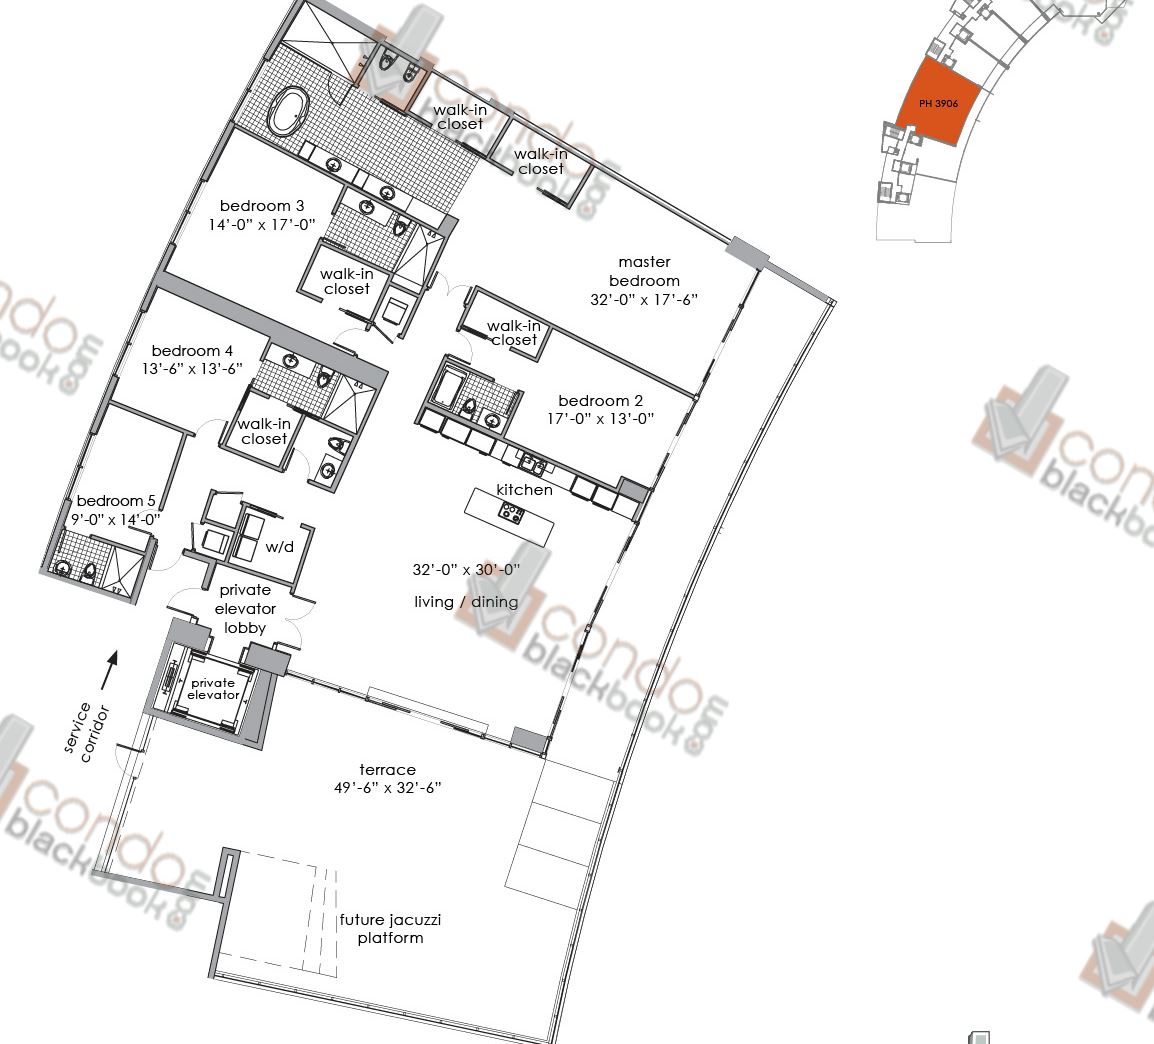 Miami Edgewater Paramount Bay Plan Image 100124505 765a Commercial Building Plans For Sale 8 On Commercial Building Plans For Sale